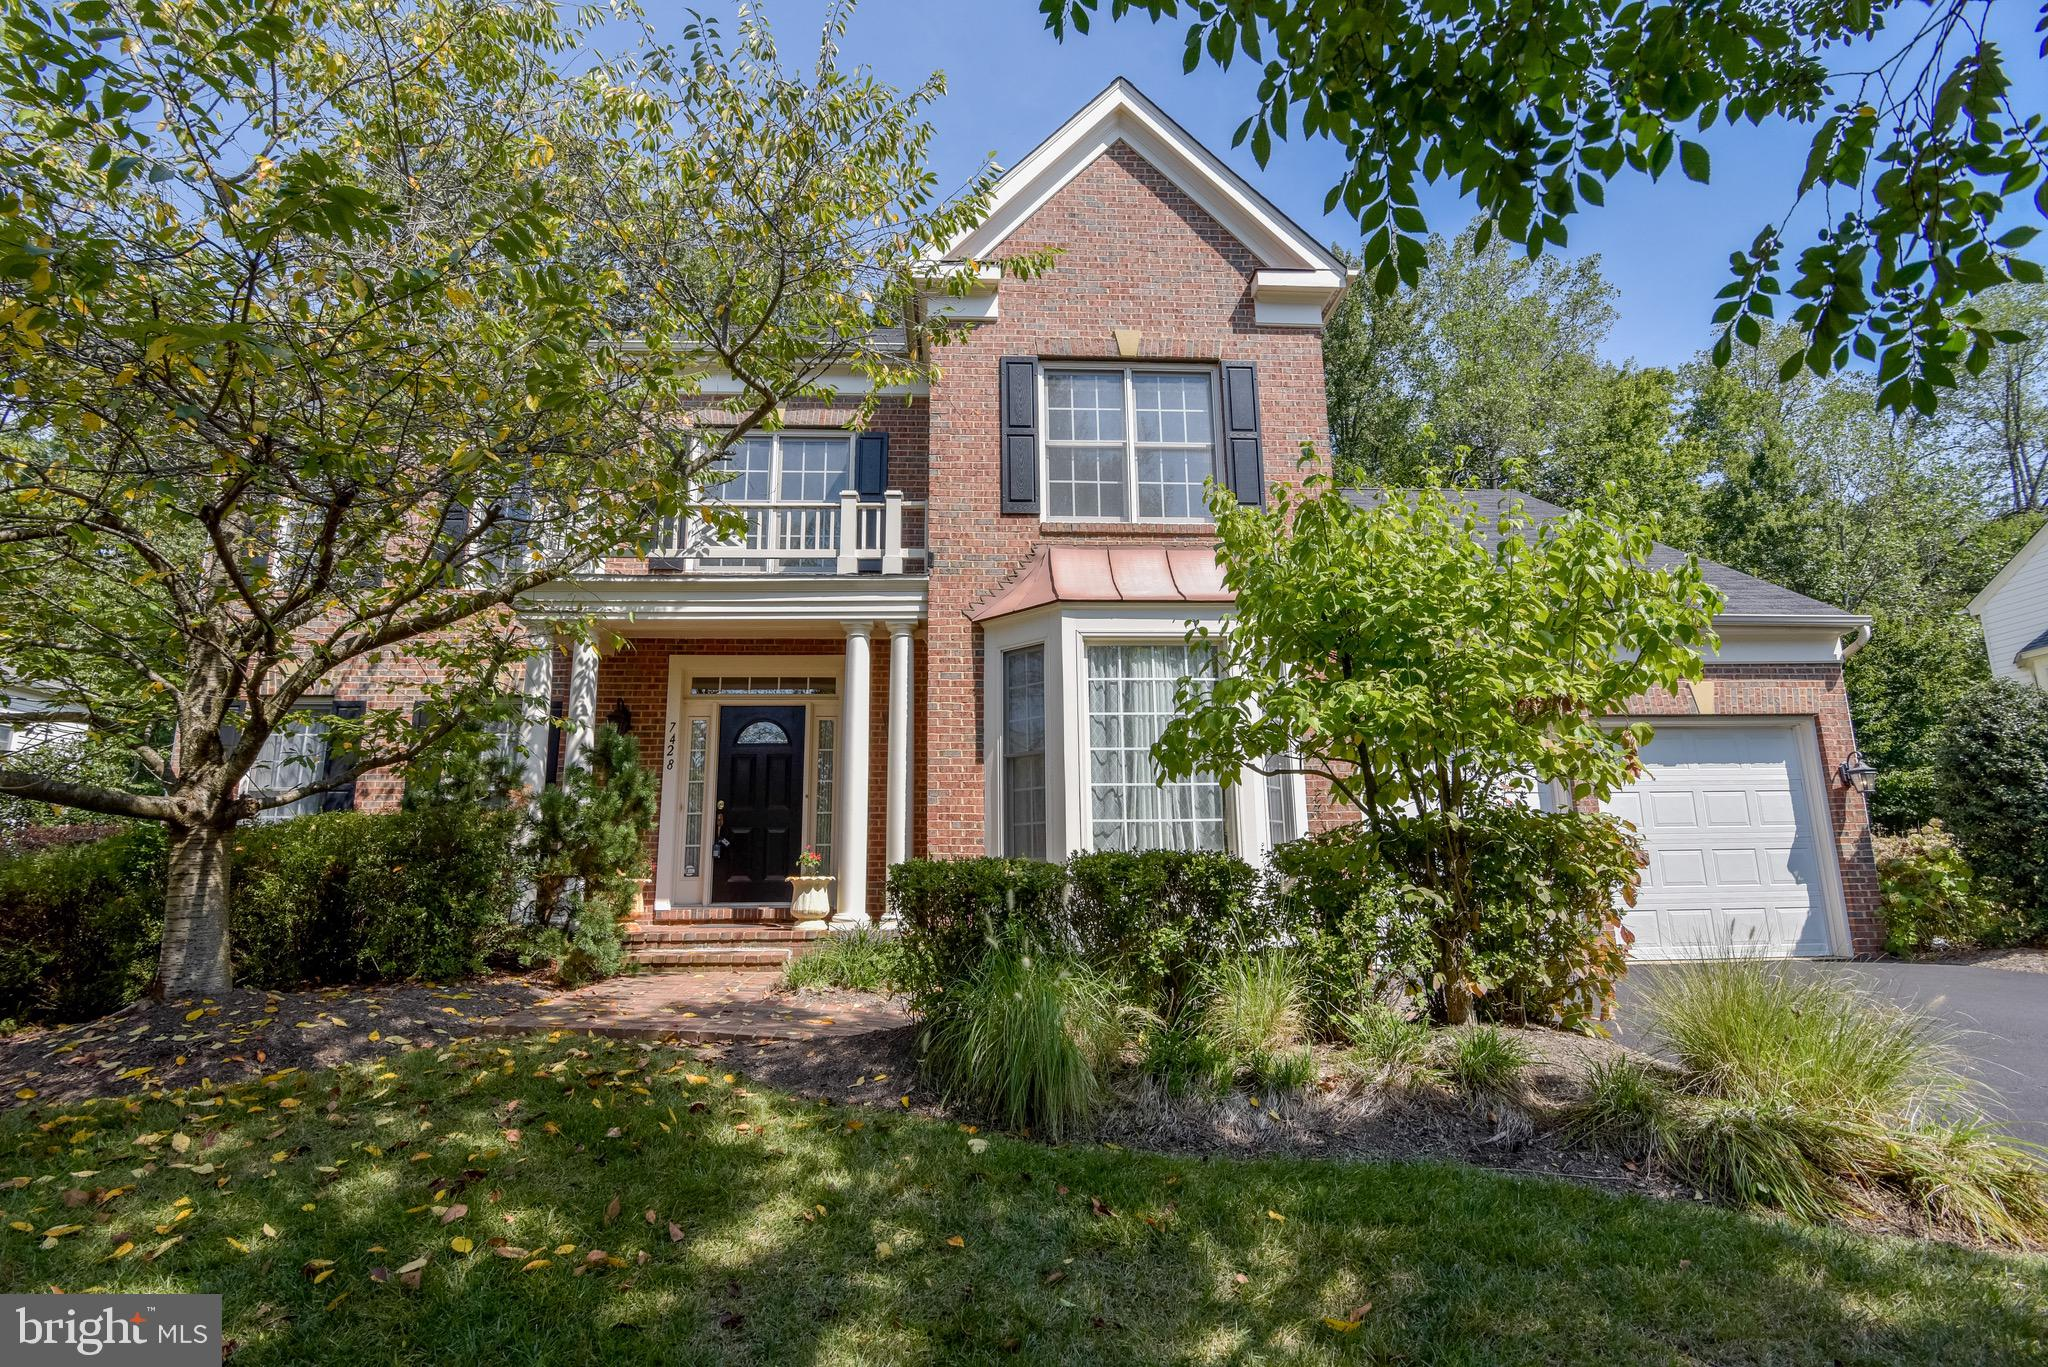 This is a great house on a beautiful lot! Turn-Key, Move-in condition! An awesome 18,454 sq ft private premium wooded lot! Spacious, open floor plan!  The large family room opens to a gorgeous sun room with a vaulted ceiling!  It's perfect for large gatherings.  The spacious deck, hardscape patio, lush landscaping & hot tub welcome you to the private oasis in the rear yard.  The long list of upgrades include...3 bay windows, main level hardwood flooring, upgraded appliances, granite counters, custom tile backsplash, 5 ceiling fans, upgraded light fixtures, 'california closet systems' in upper level closets & renovated upper level bathrooms.  The lower level rec room is huge, plus there's a full bath & a gigantic storage area. The hot water heater & main level HVAC system are only 1 year old.  9-zone sprinkler system!  Lots of fresh paint! It's sparkling clean.  Westhampton is a community of 105 homes tucked away just off the parkway but less than 2.5 miles to Metro! Truly, it's a Gem! Great Price! Great Property! Great Community! Come & See for yourself! Motivated Sellers!